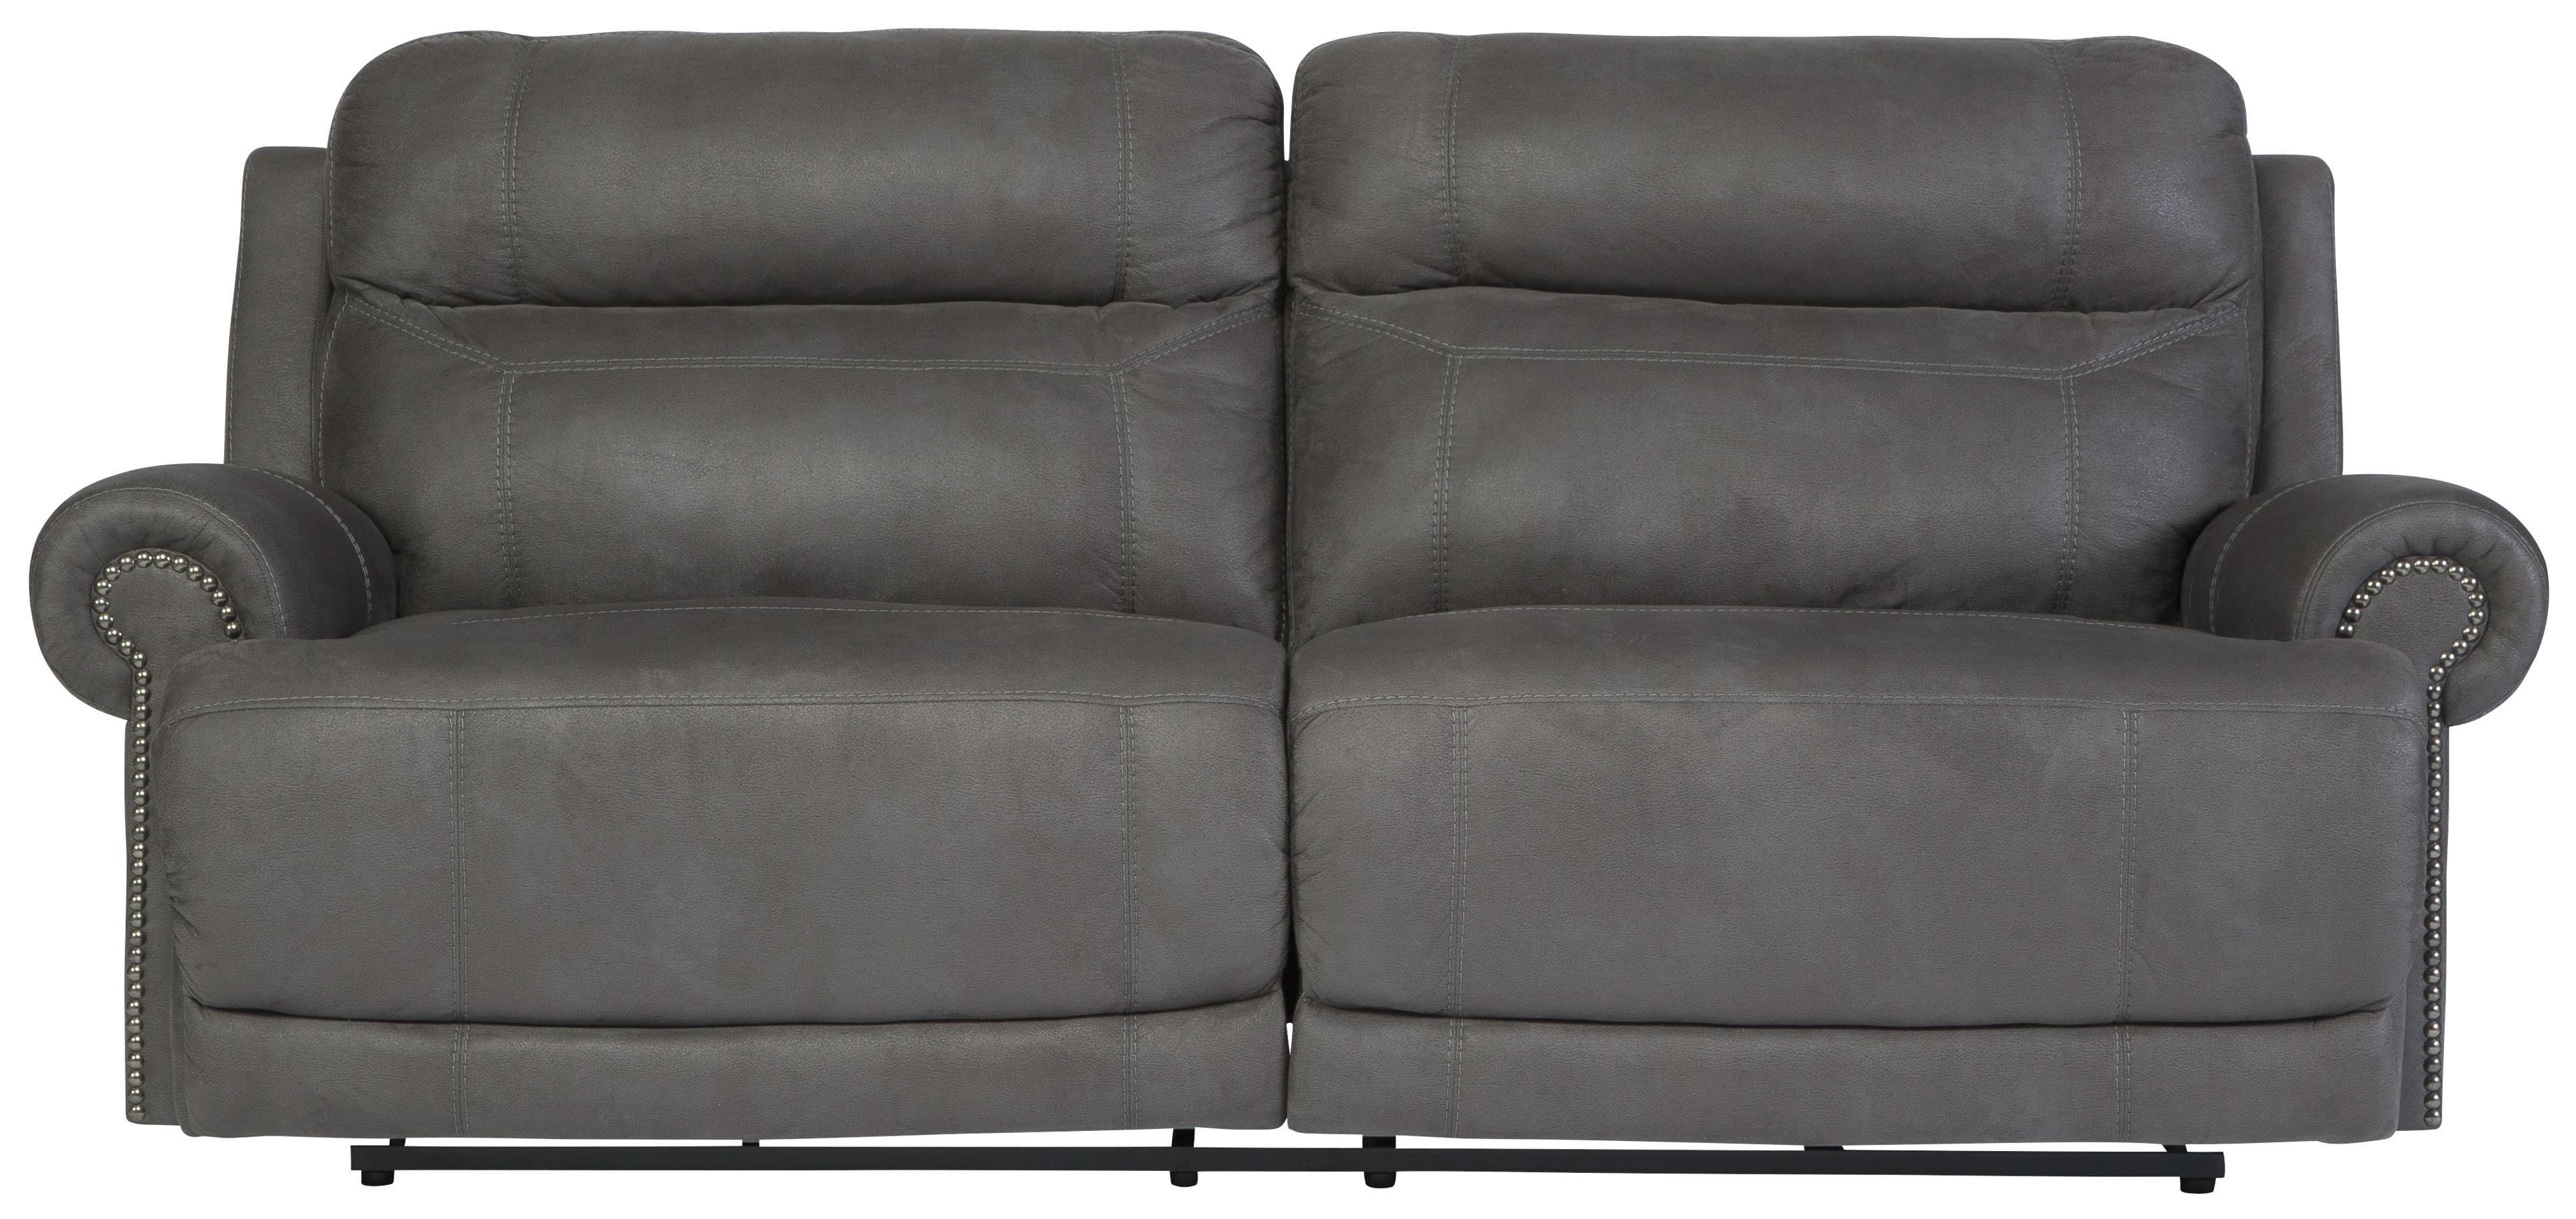 Austere - Gray 2 Seat Reclining Power Sofa by Ashley (Signature Design) at Johnny Janosik